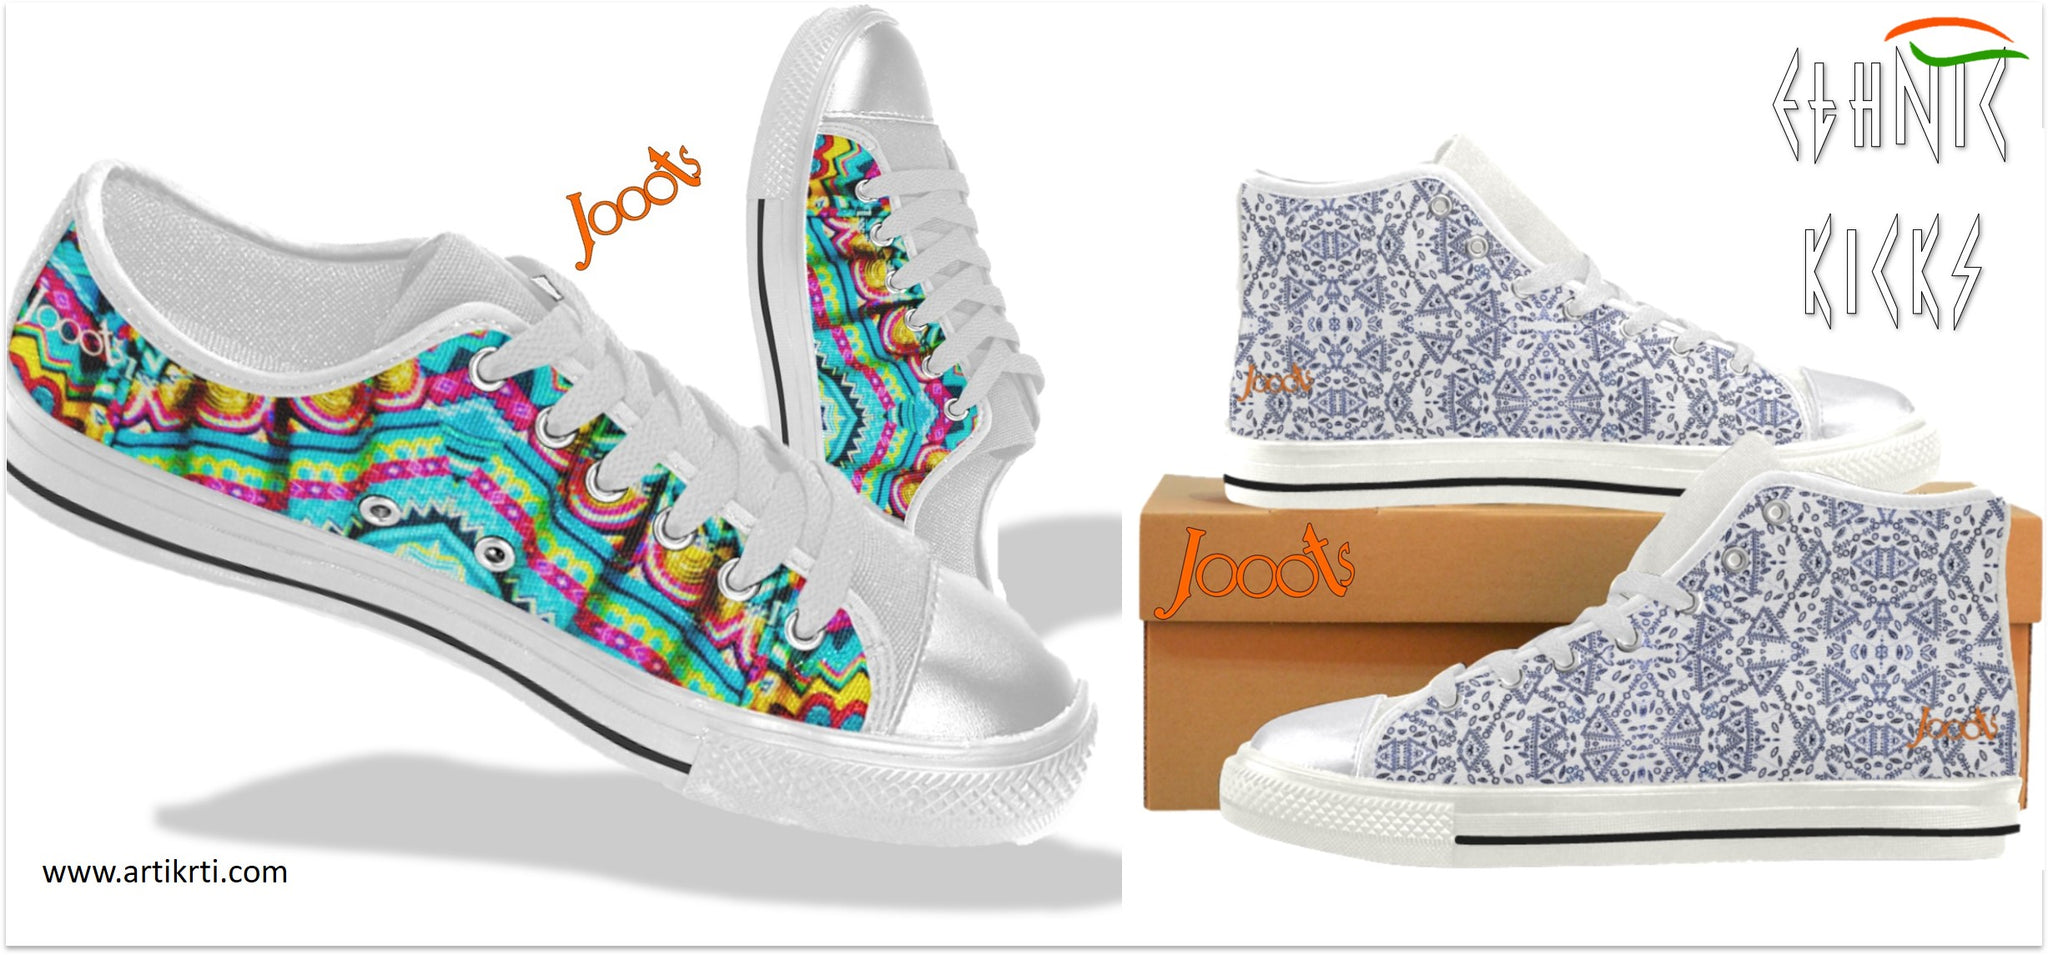 batik-print-sneakers-henna-design-keds-girls-women-artikrti